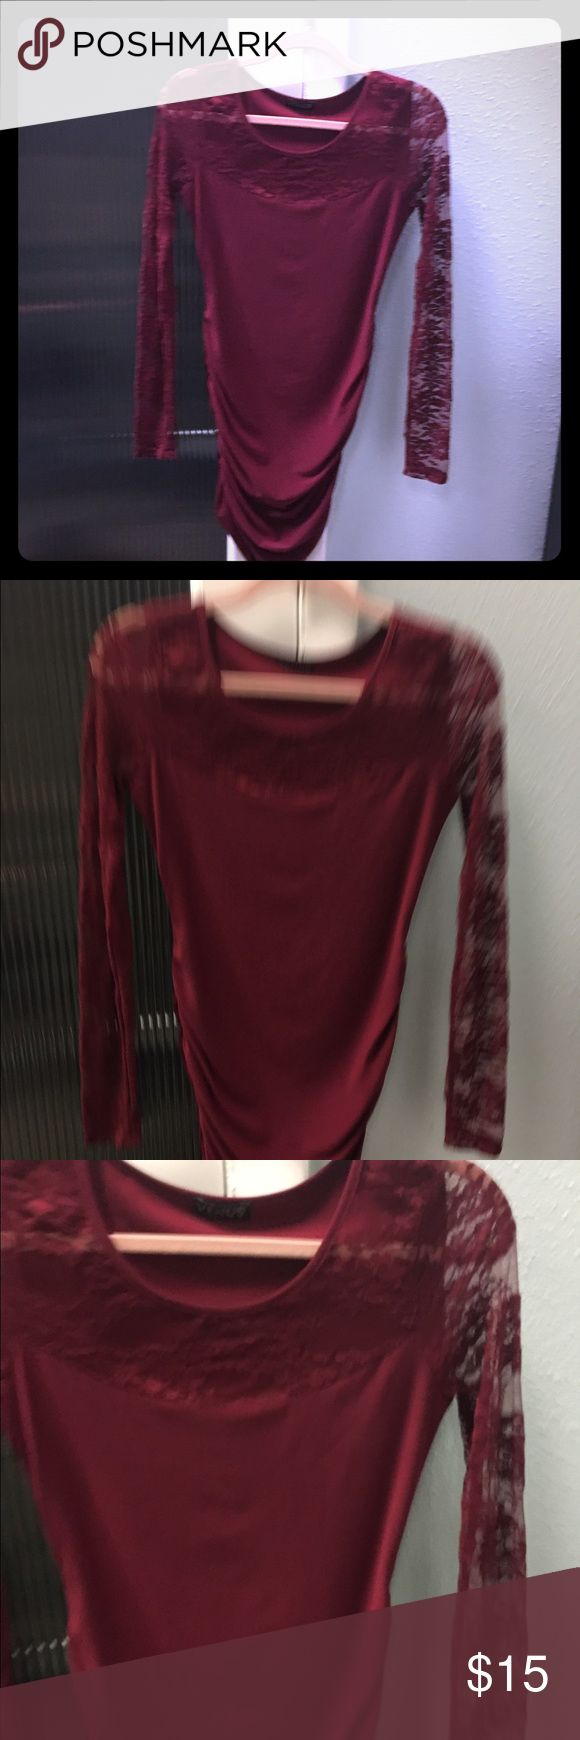 NEVER WORN! Plum colored dress. Plum color dress with long sleeve lace detail. NEVER WORN! Super sexy!!! Venus swimwear Dresses Mini